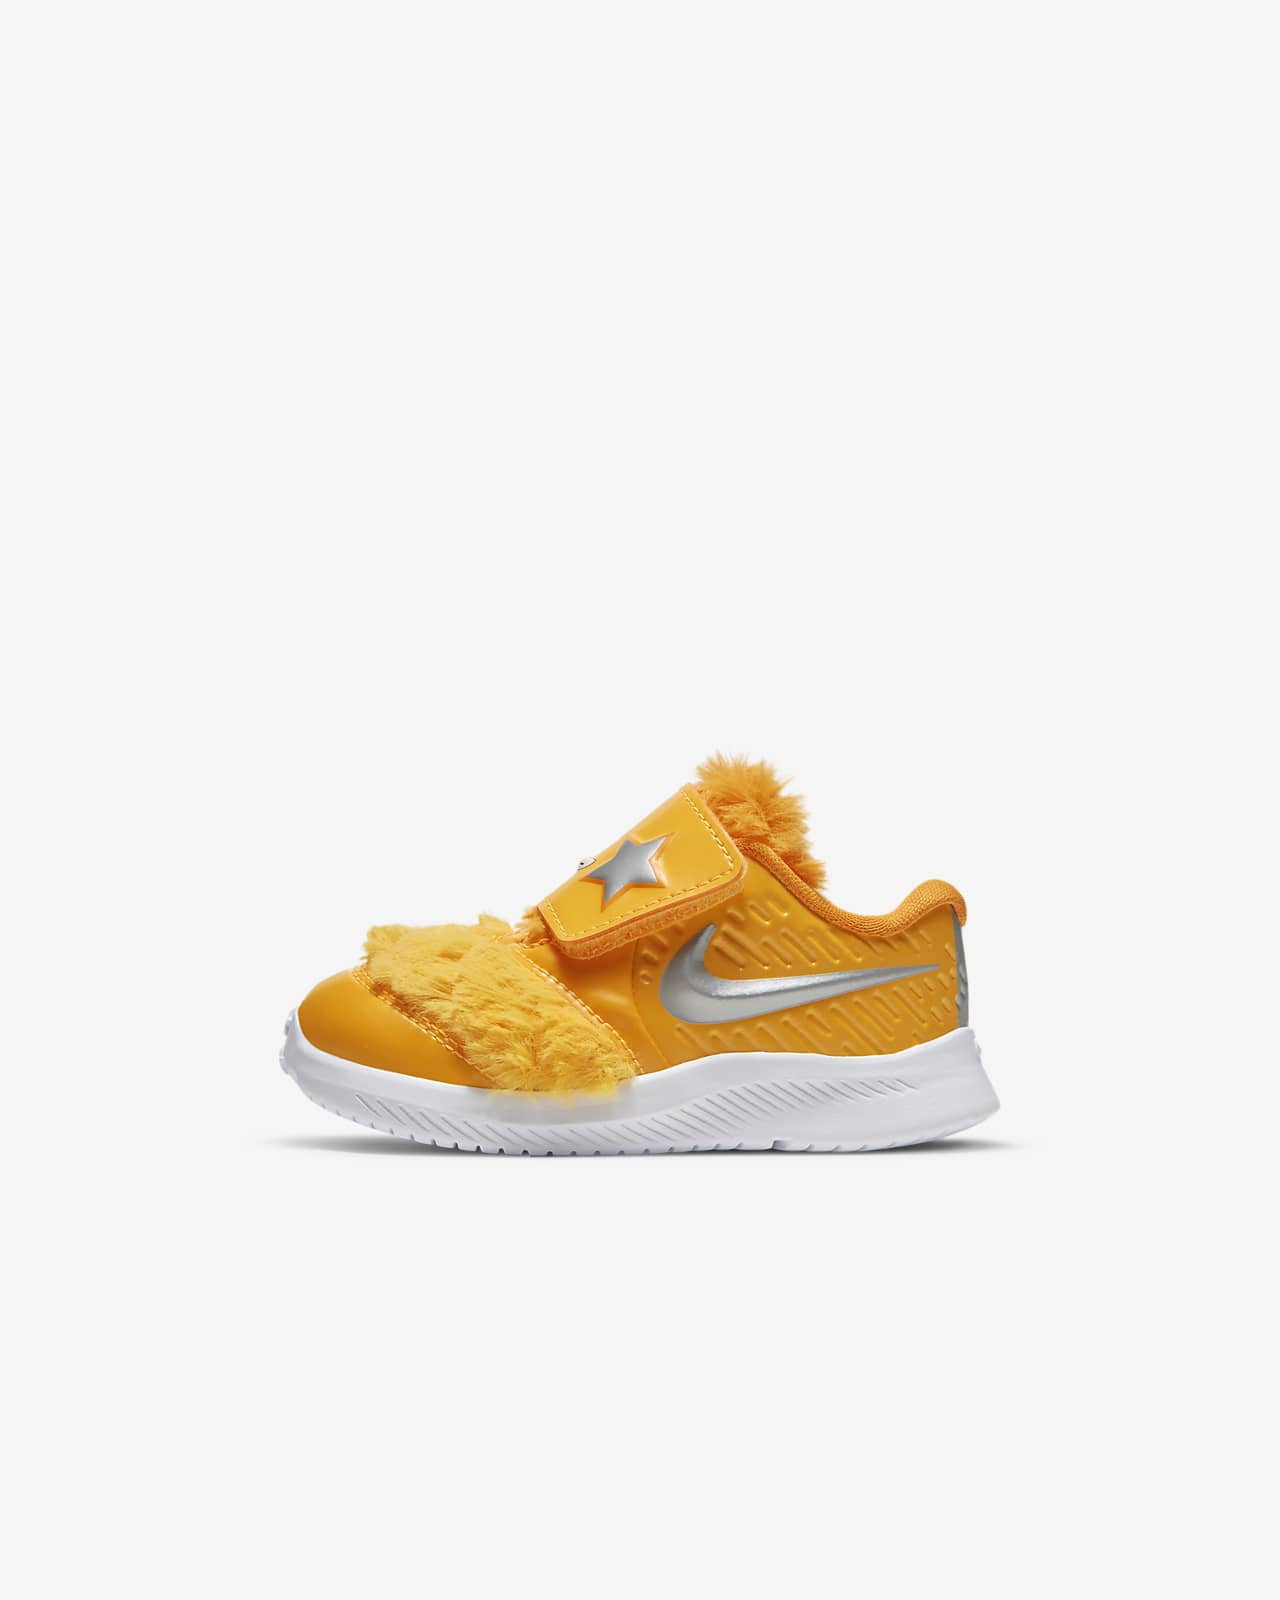 Nike Star Runner 2 Fast n Furry 嬰幼兒鞋款